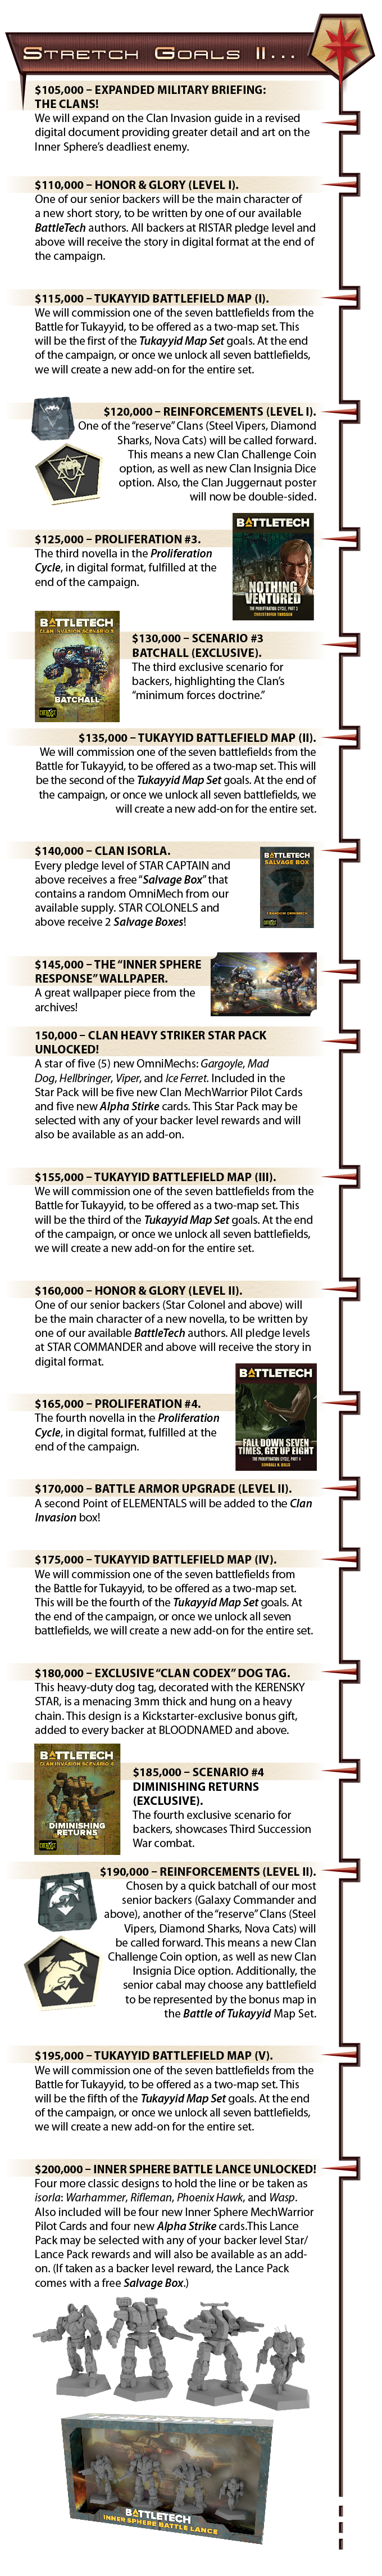 BattleTech: Clan Invasion by Catalyst Games — Kickstarter